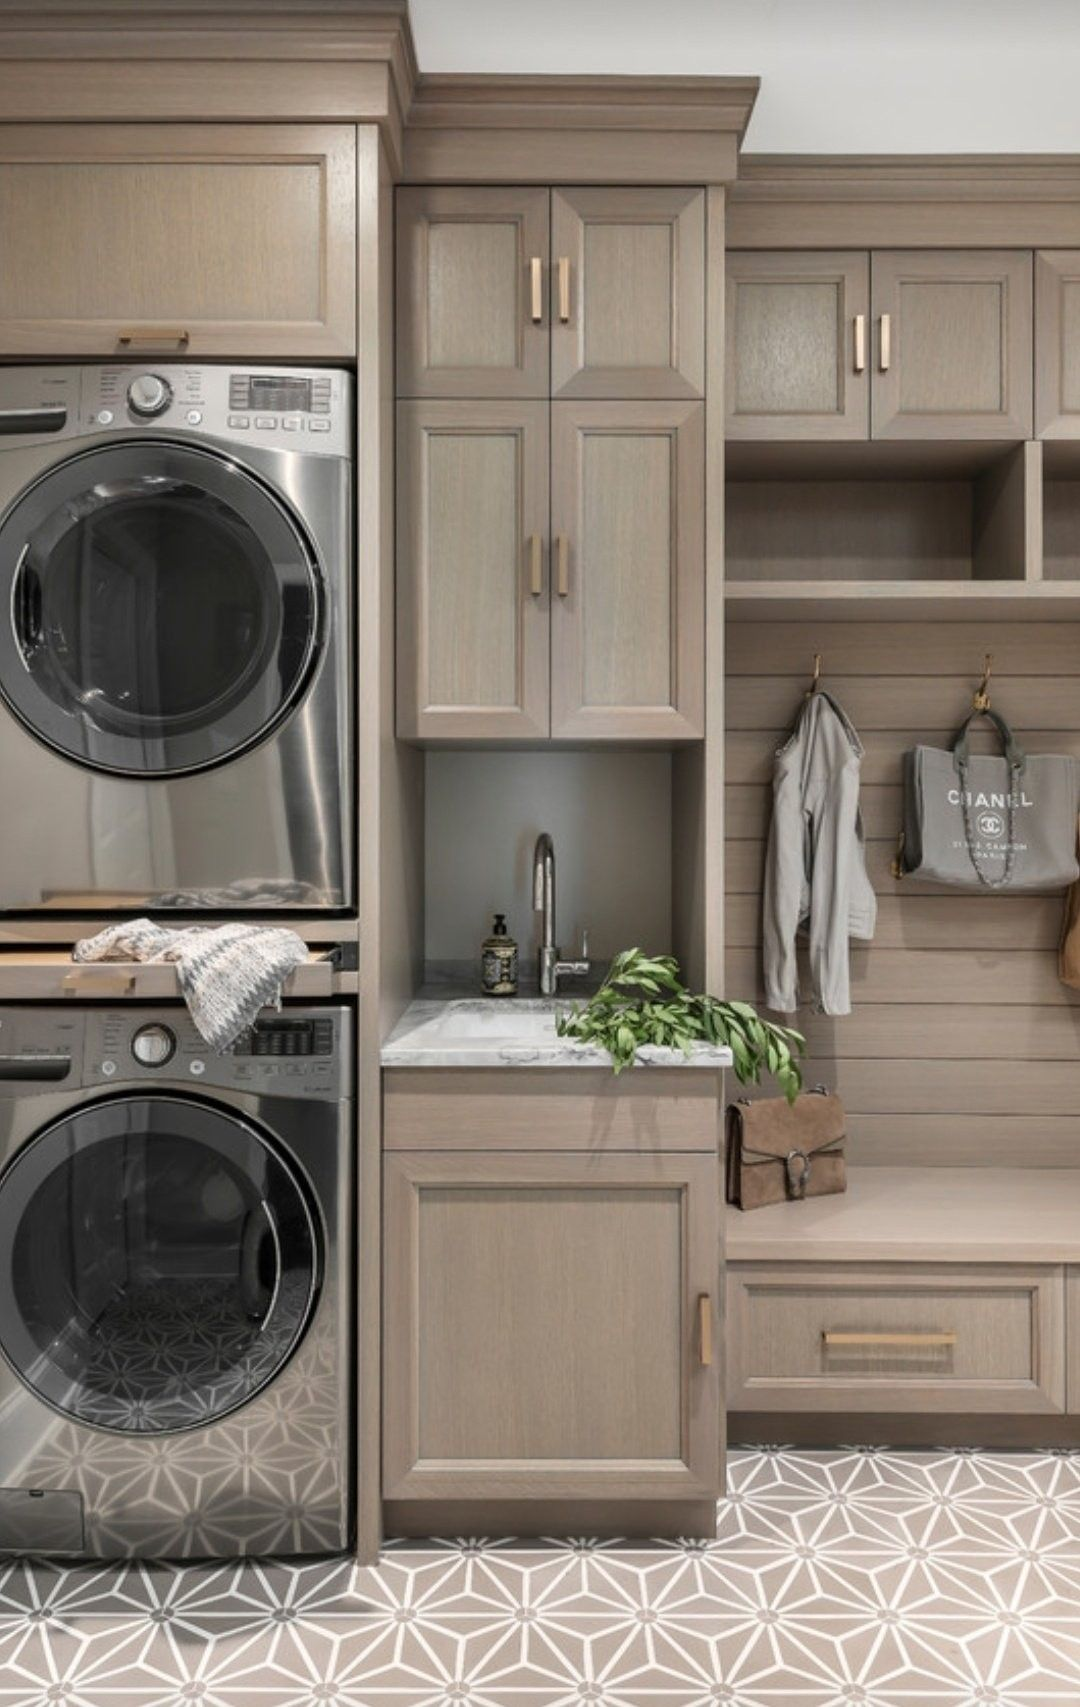 Joselynforbes Follow For More Great Pins Laundry Room